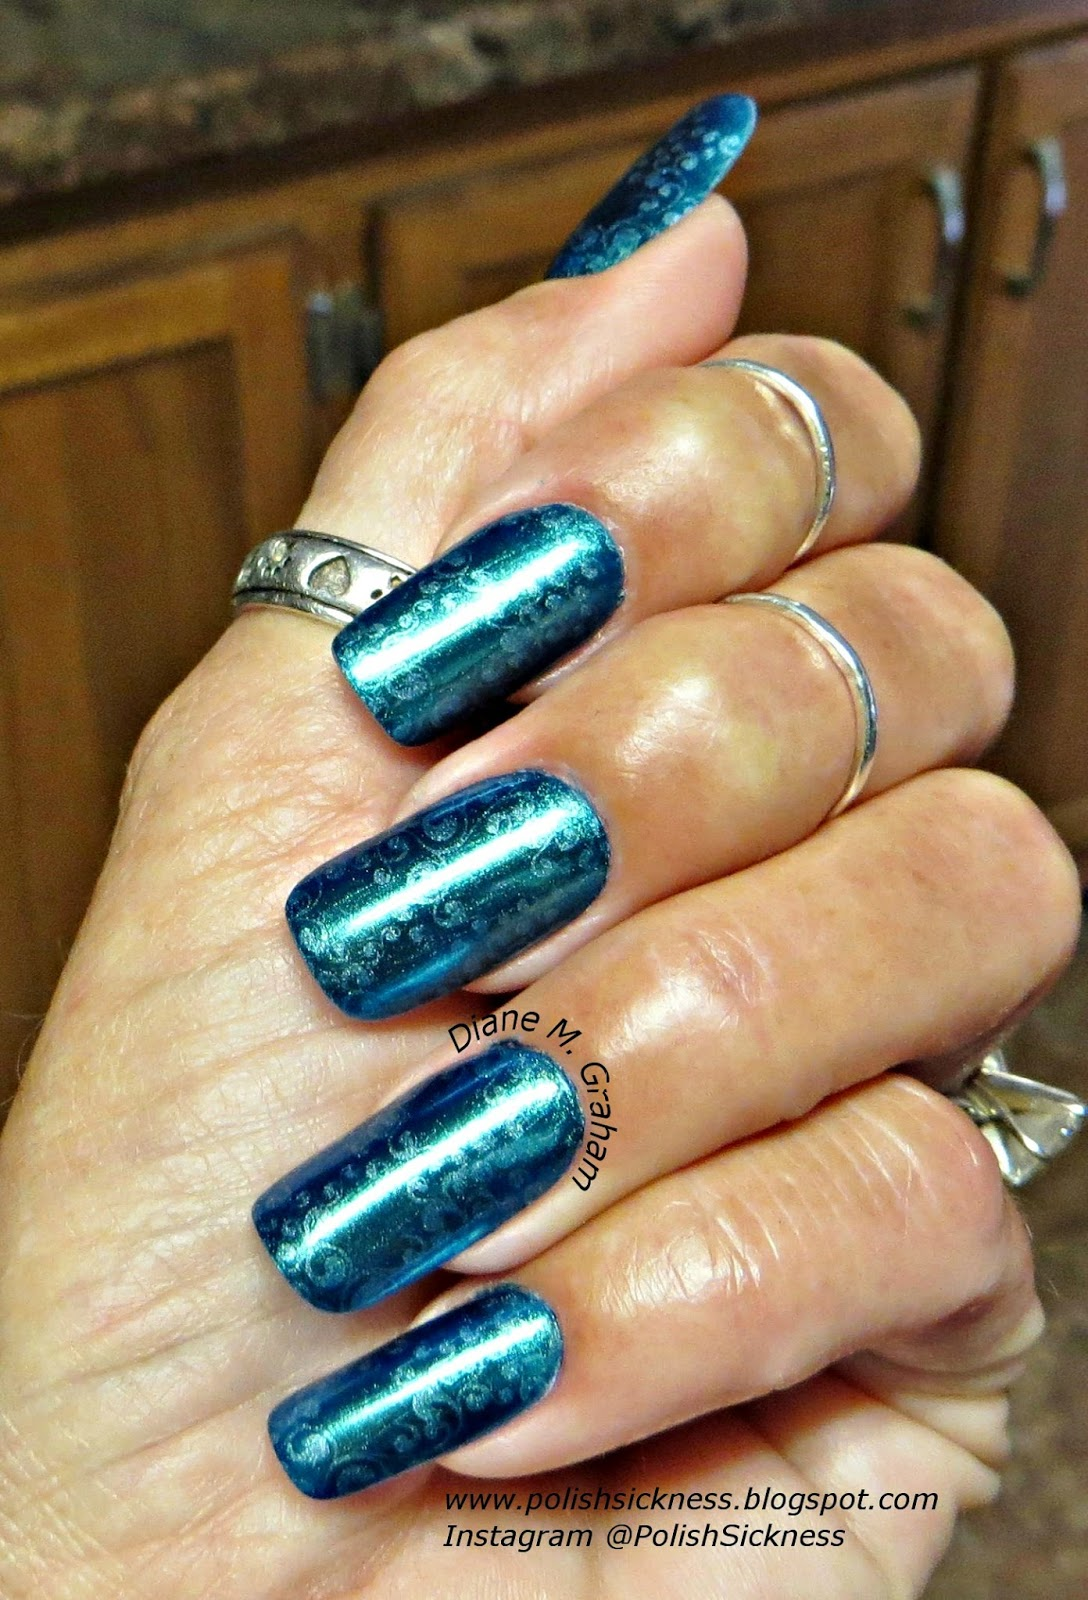 Sally Hansen Color Foil Leaden Lilac, China Glaze Queen B, LeaLac B stamp